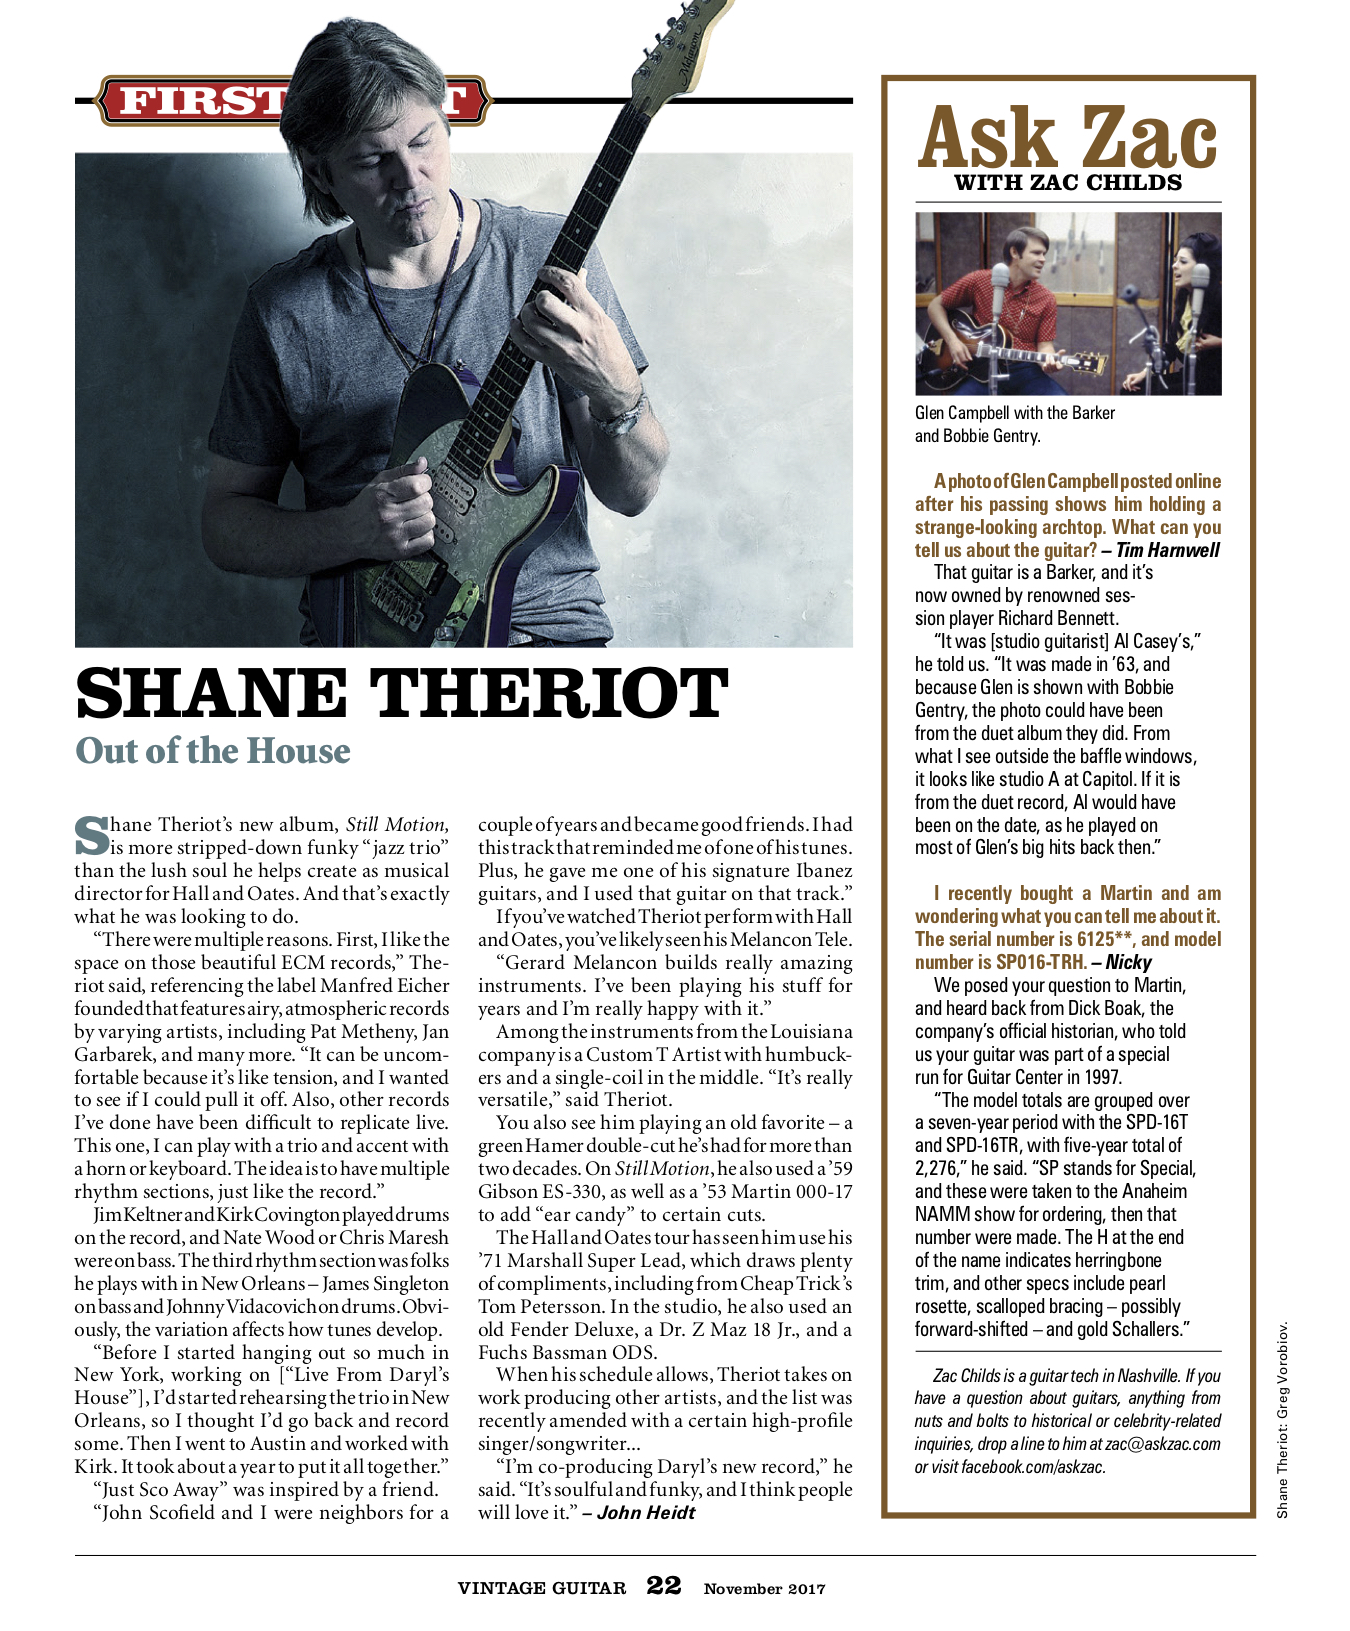 shane theriot vintage guitar magazine by greg vorobiov.jpg